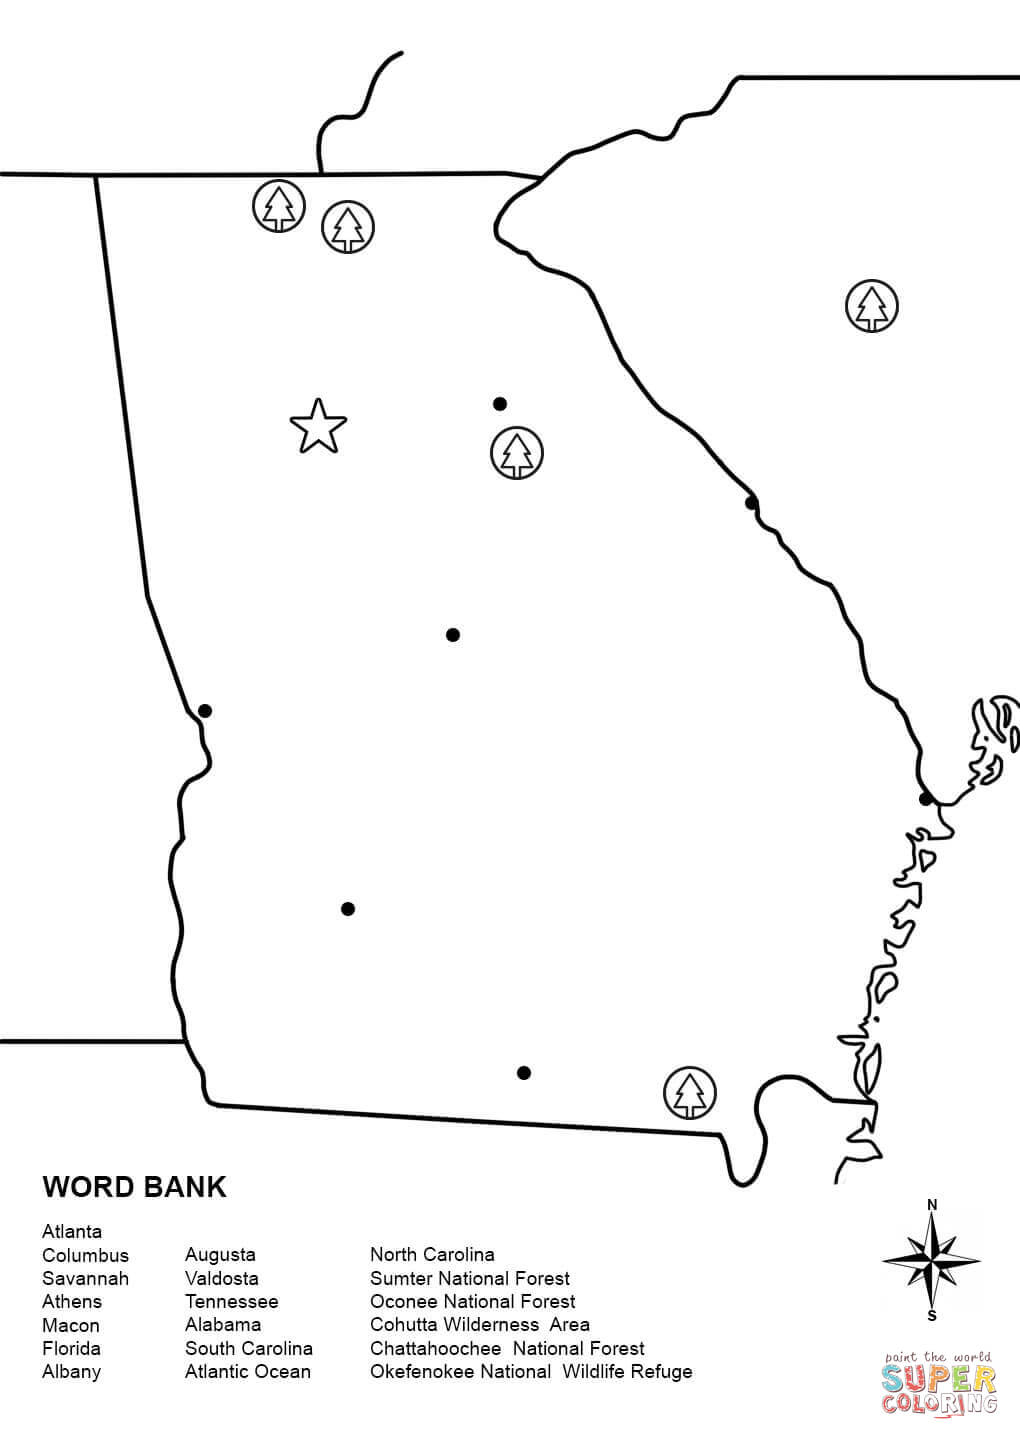 georgia map coloring page 16 best maps images on pinterest 50 states cards and map coloring georgia page